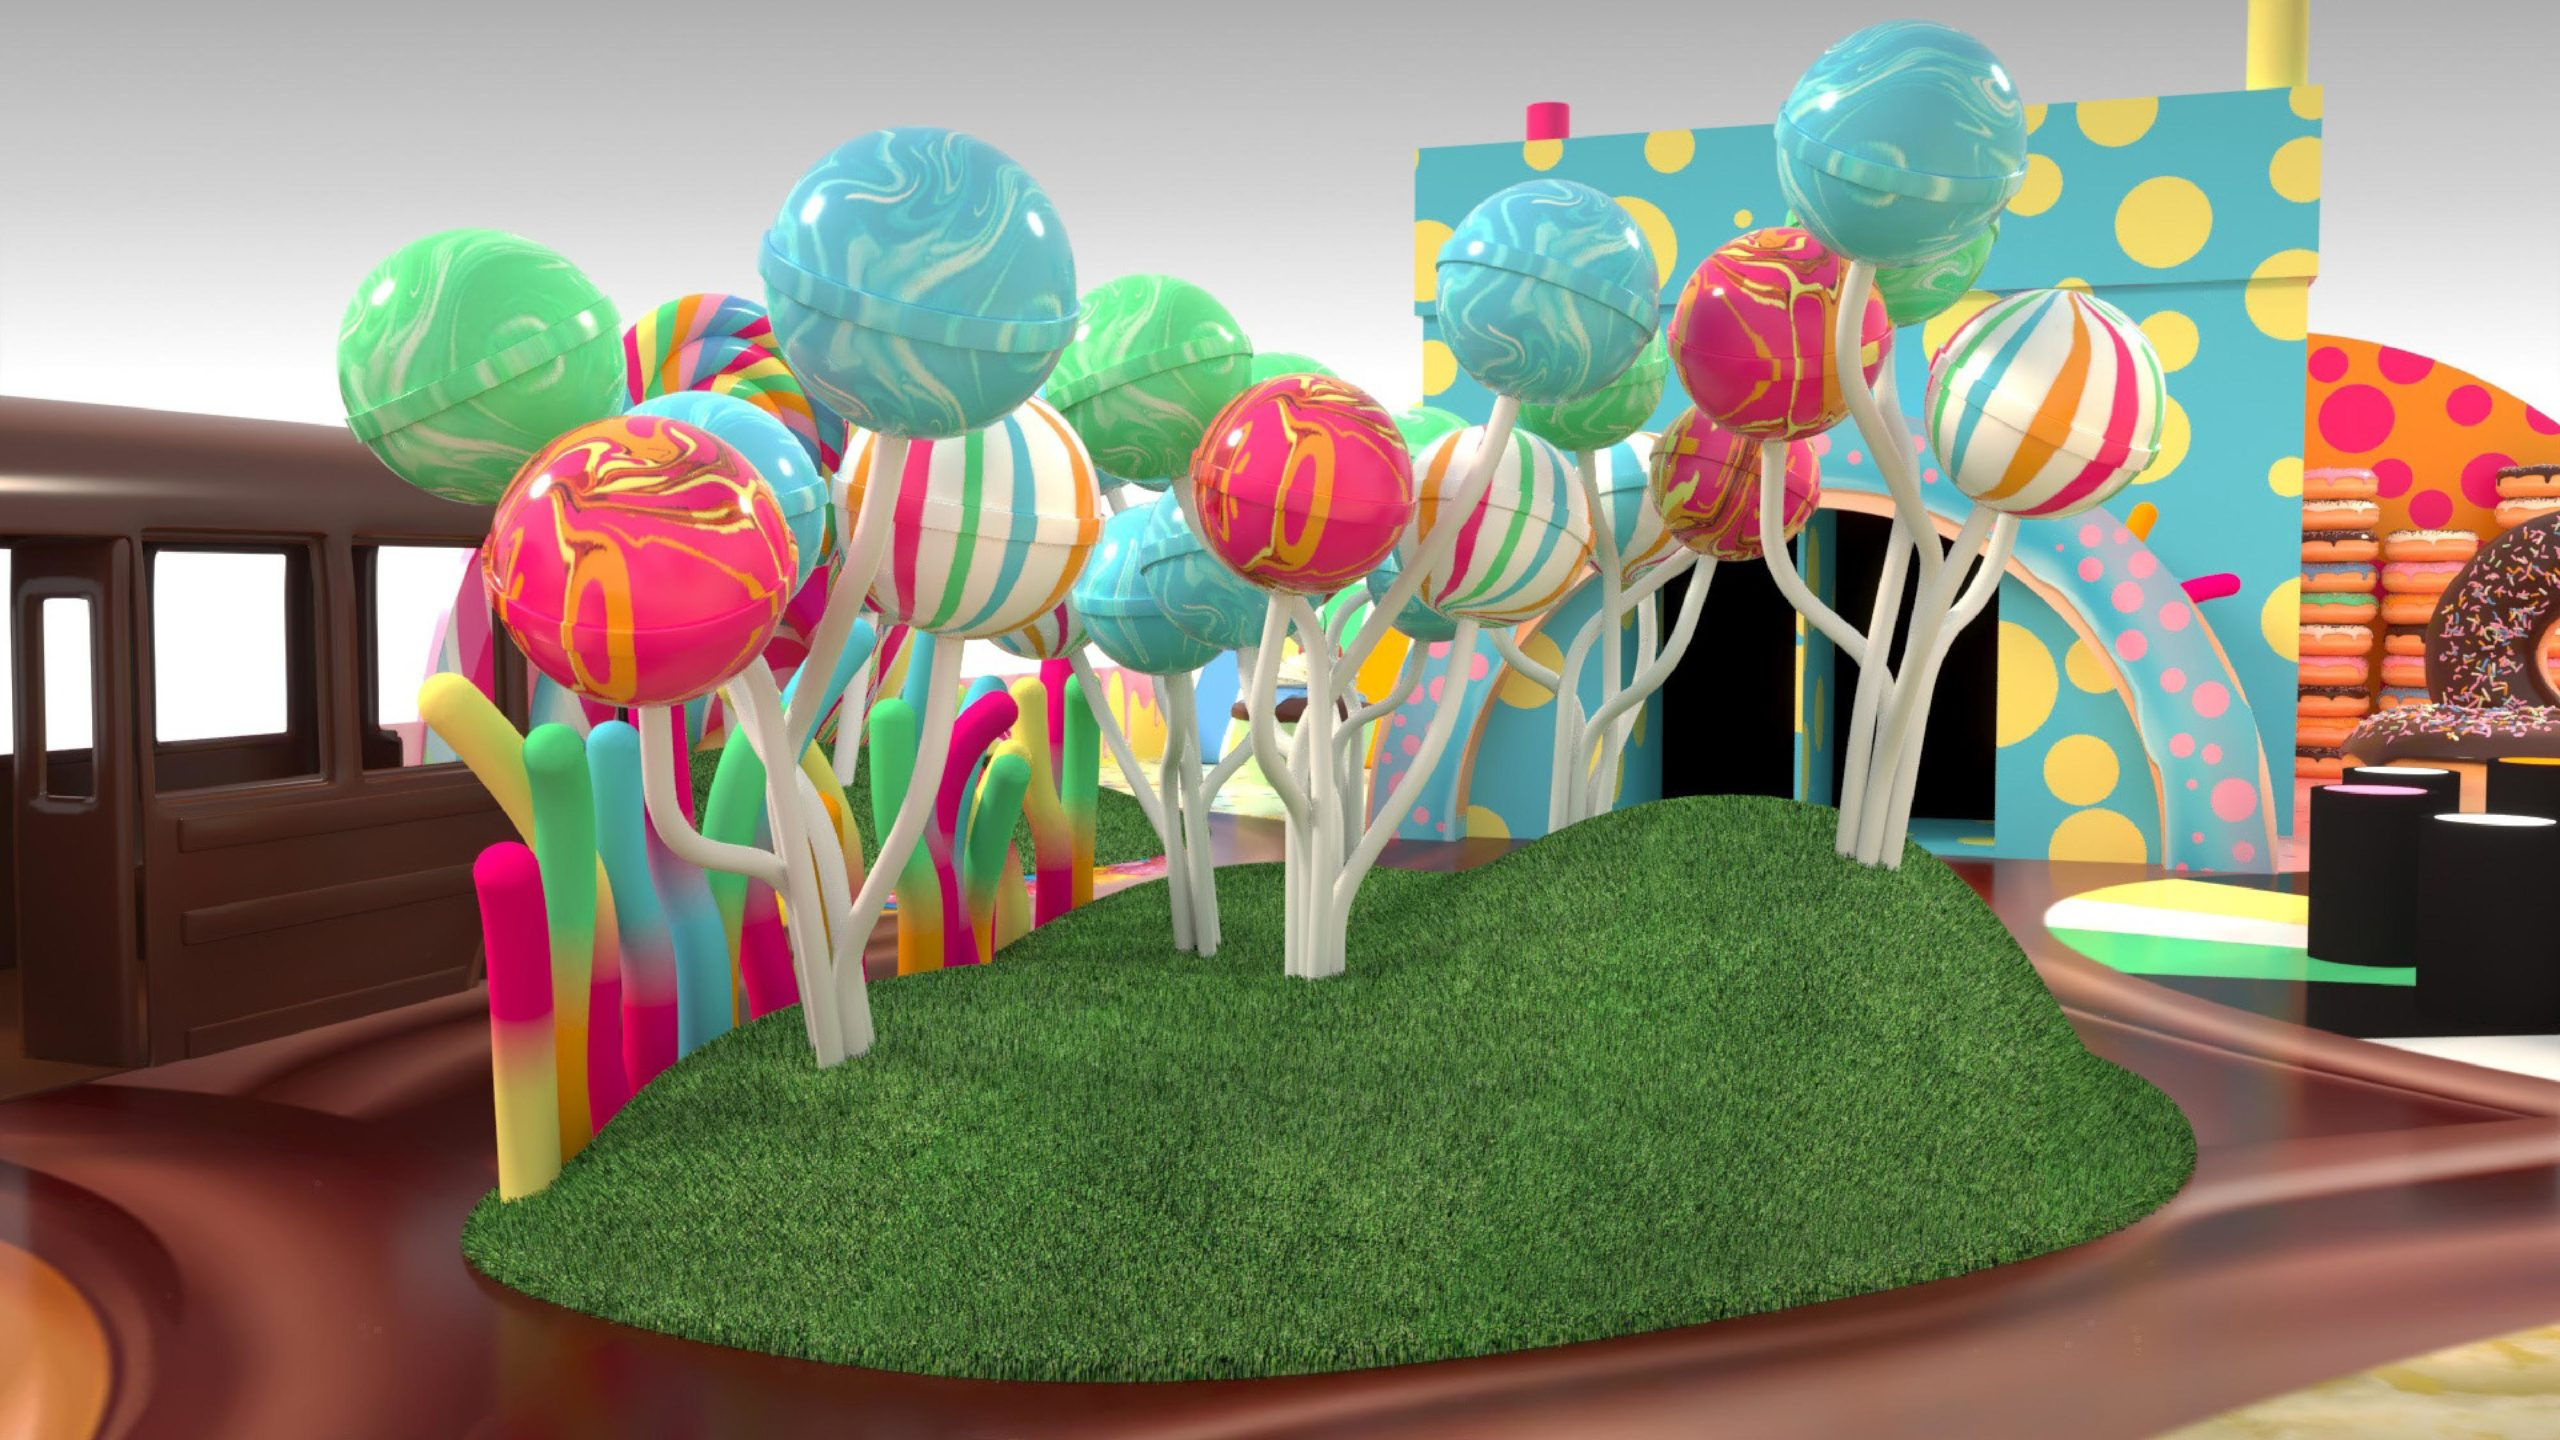 Gateway's fantastical Sweetopia is a visual treat these holidays